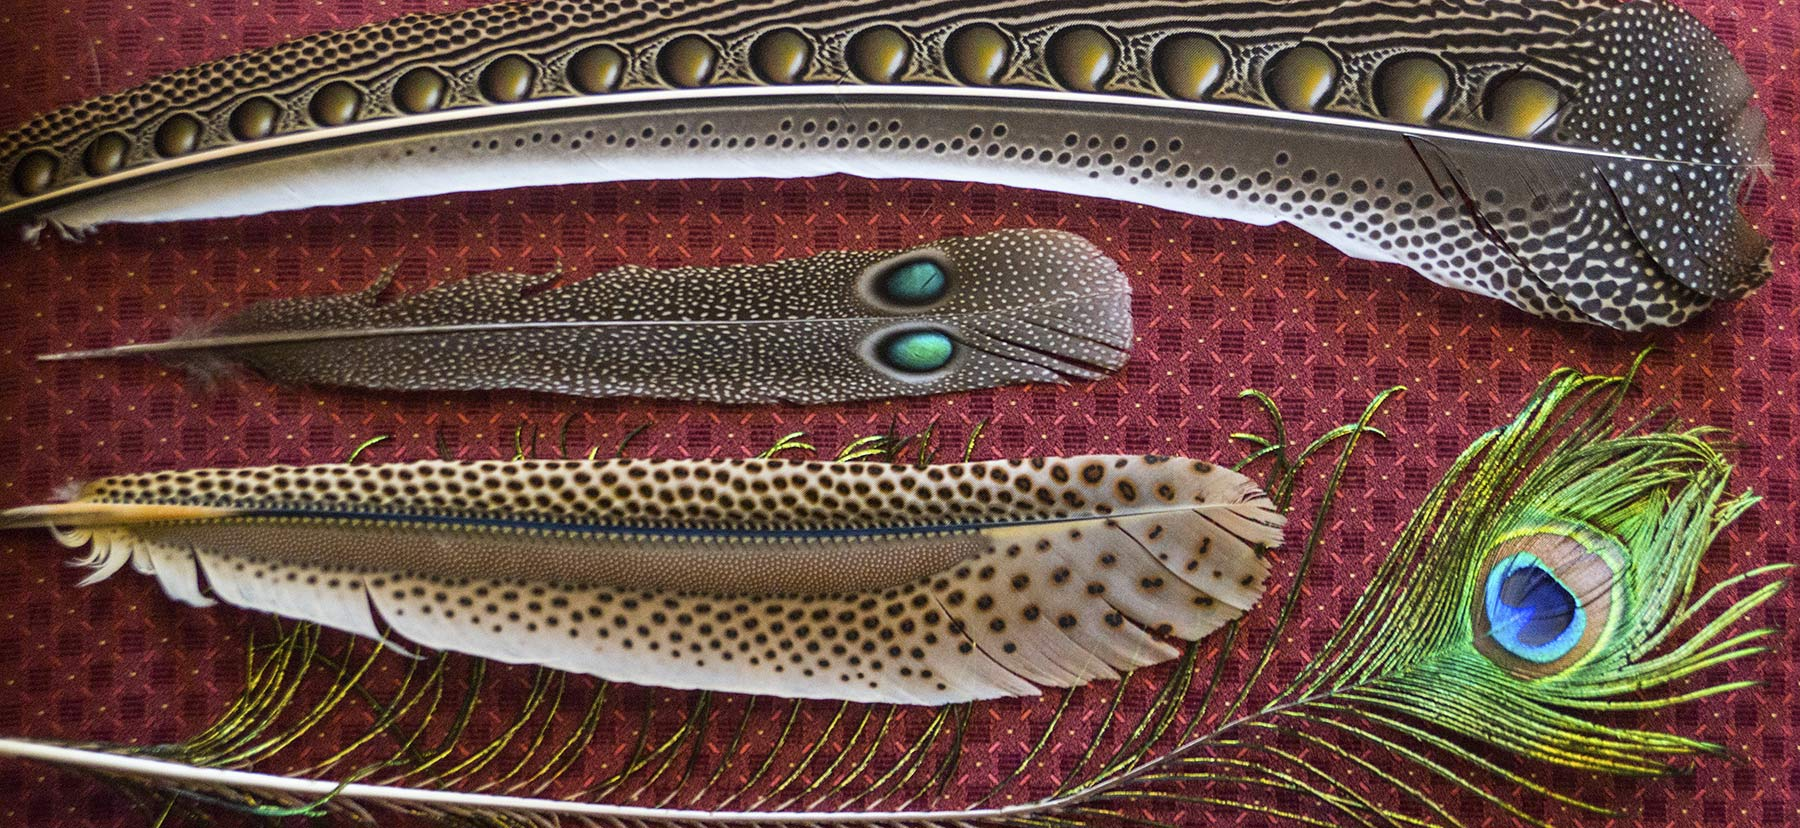 Various feathers featuring intricate patterns